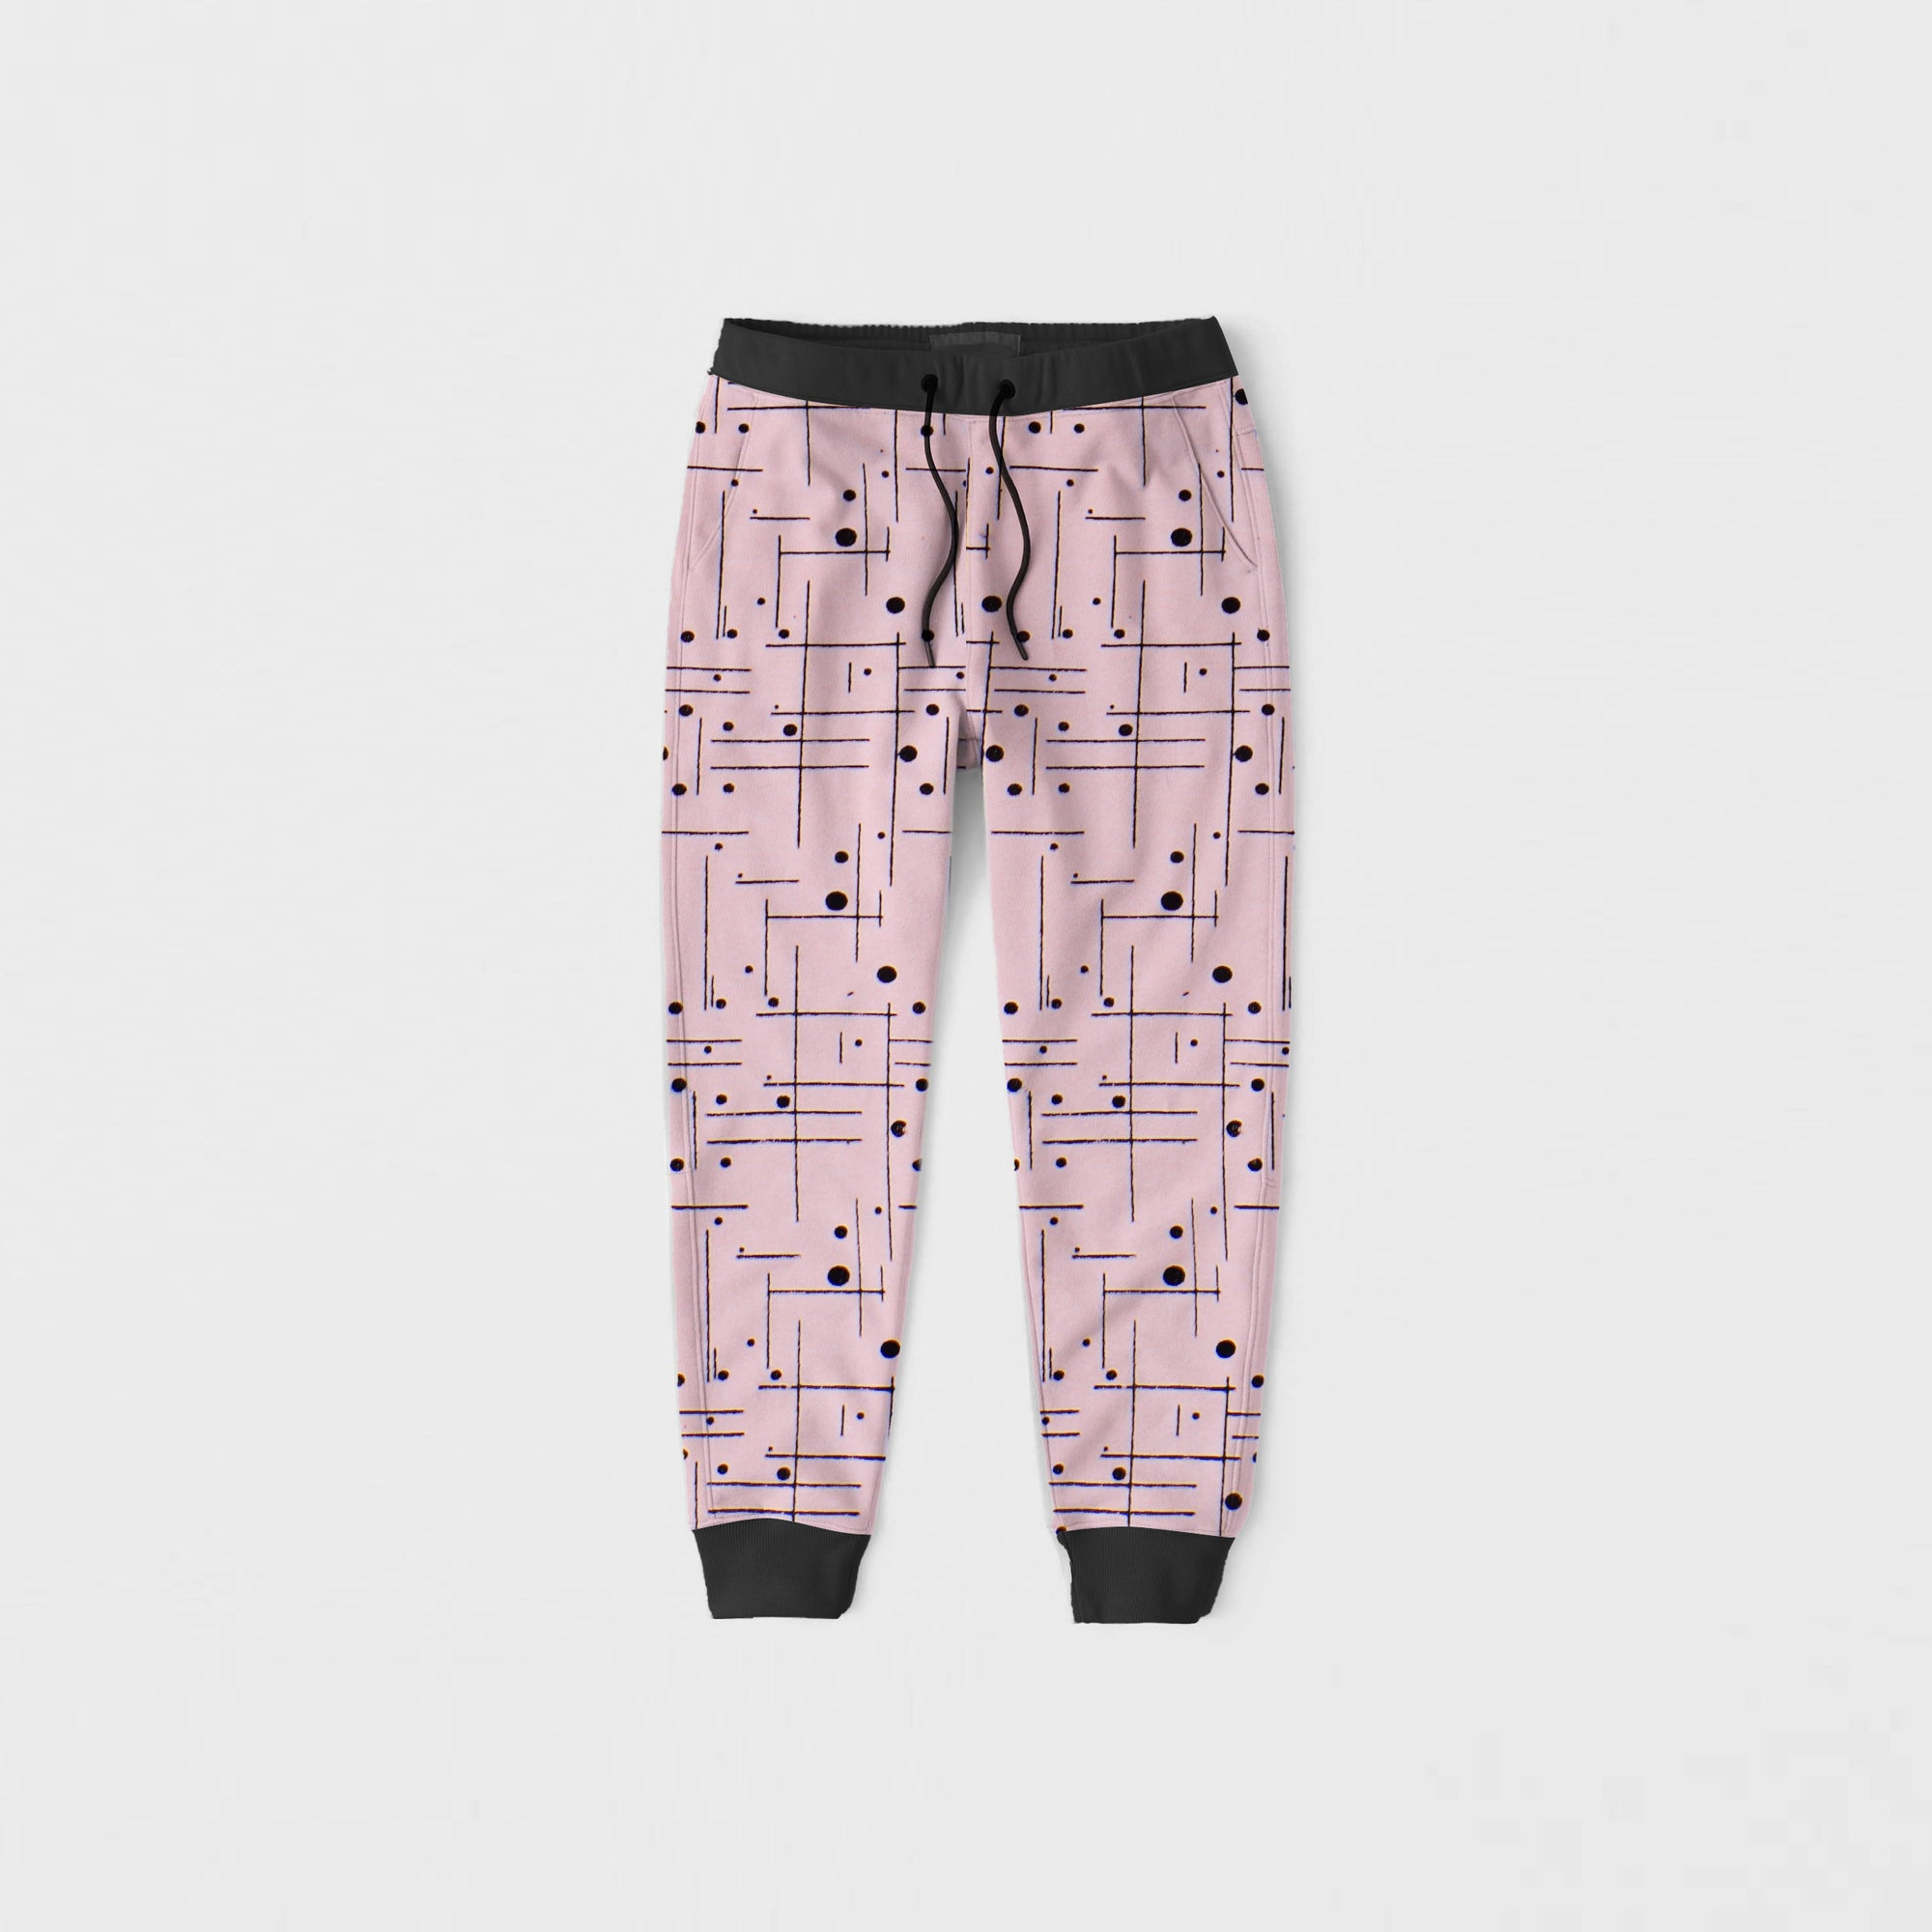 Drift King Slim Fit Terry Fleece Jogger Trouser For Kids-Pink With Allover Print-NA12468